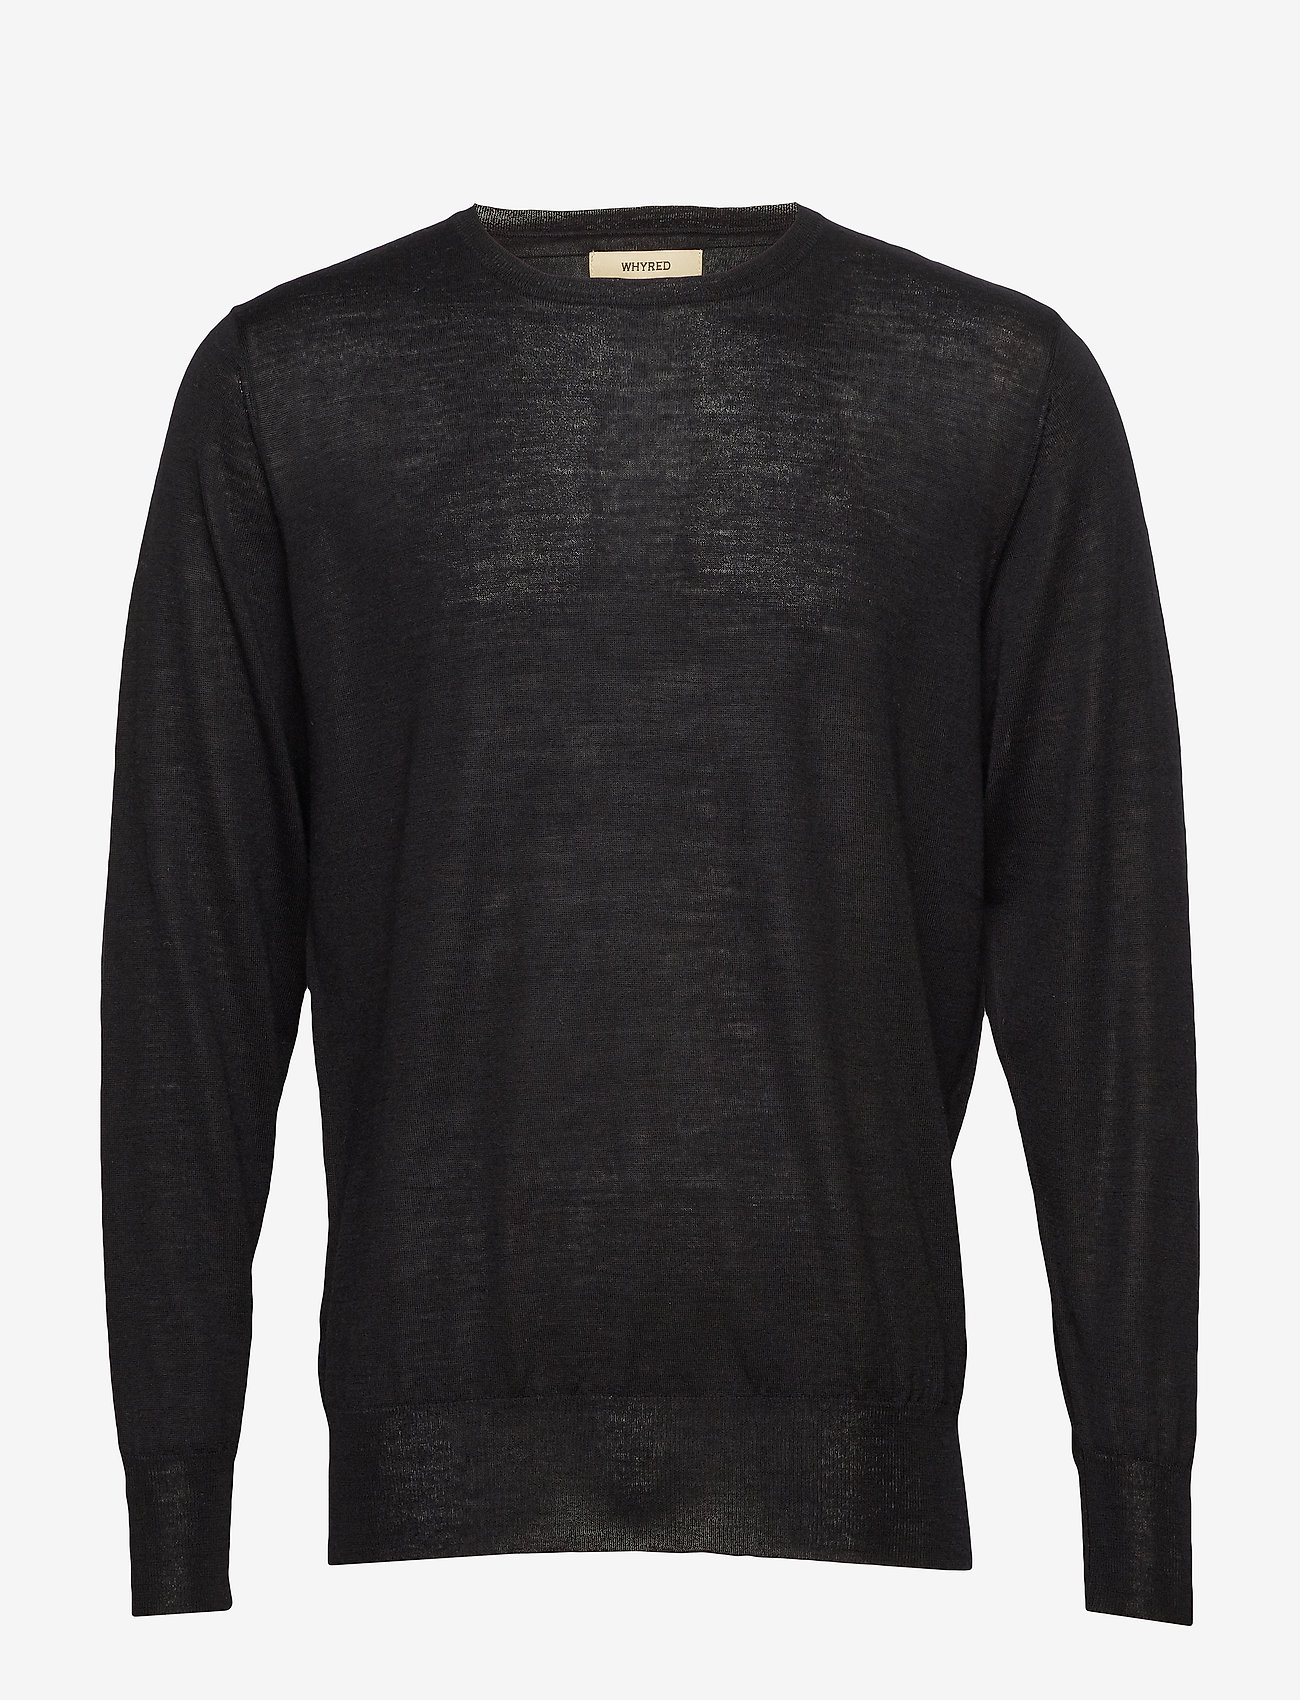 Whyred - ICKY - basic knitwear - black